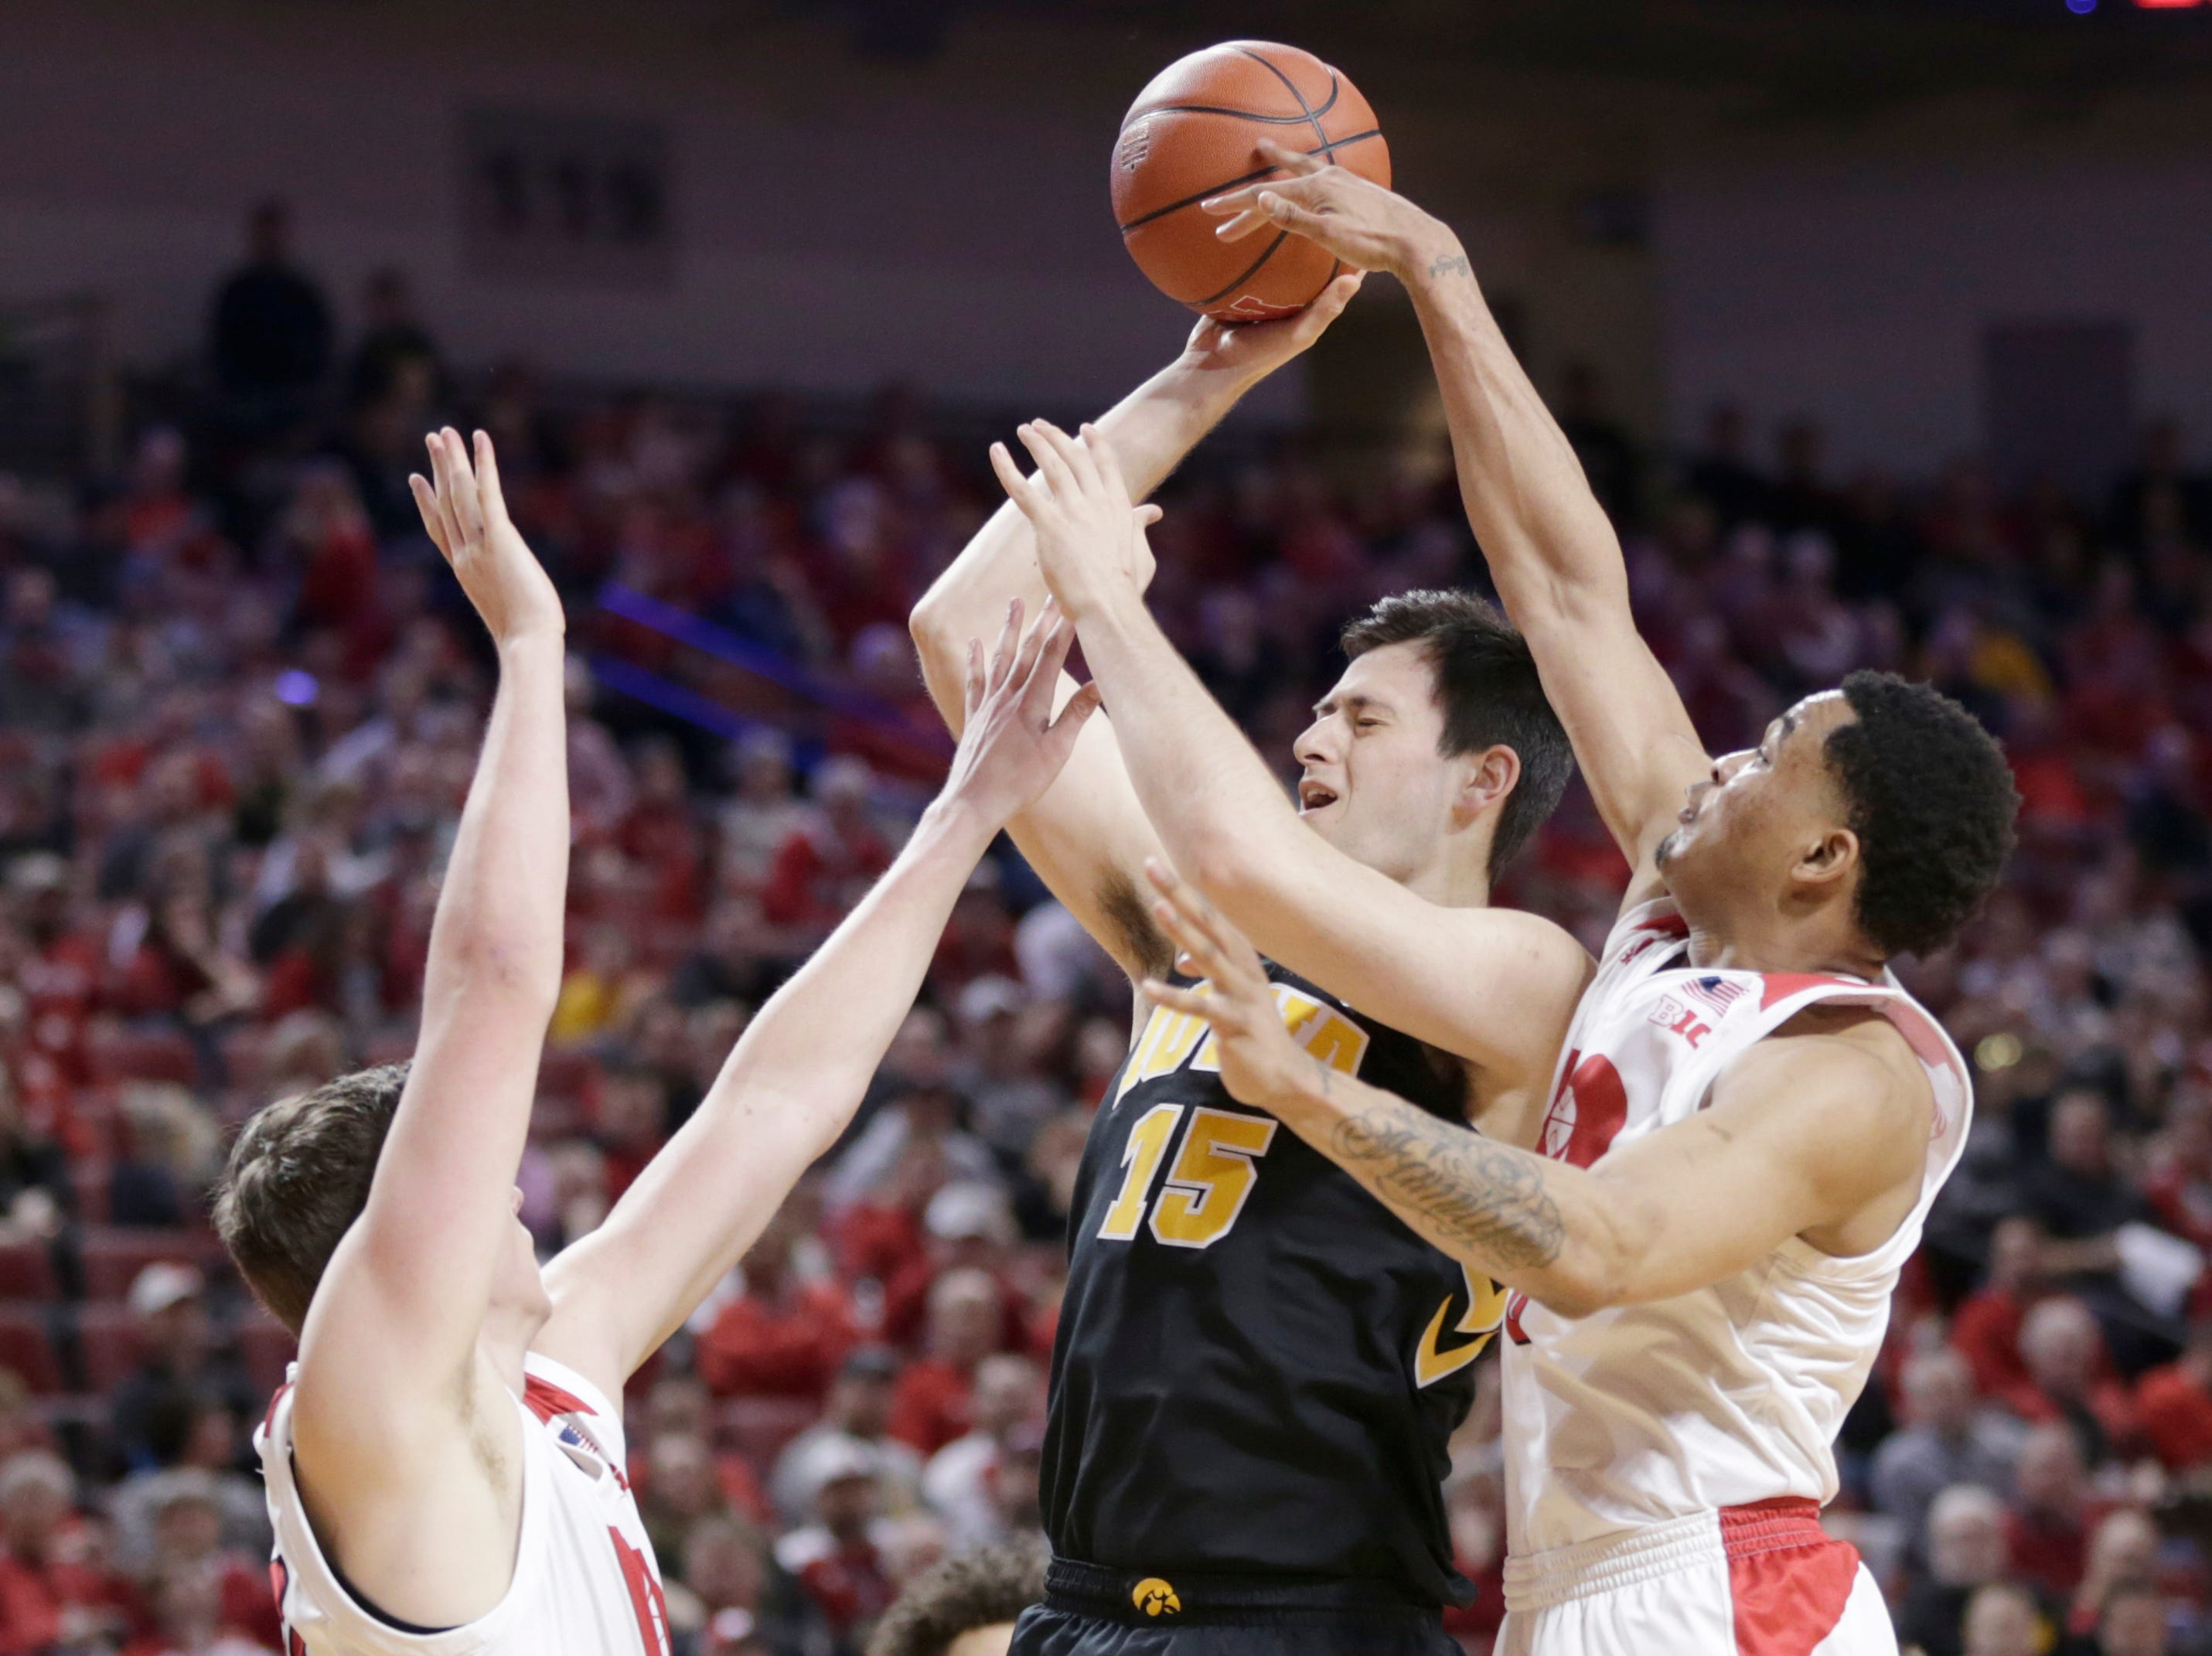 6. Iowa (21-10, 10-10): The Hawkeyes had coach Fran McCaffrey back for the final game of the regular season after his two-game suspension, but even that couldn't end a four-game skid to close the season. The Hawkeyes blew a 16-point lead in the second half at Nebraska on Sunday and enter the postseason losing five of six. They've got a spot in the NCAA Tournament, but momentum has long since left the Hawkeyes. Last week: 7.